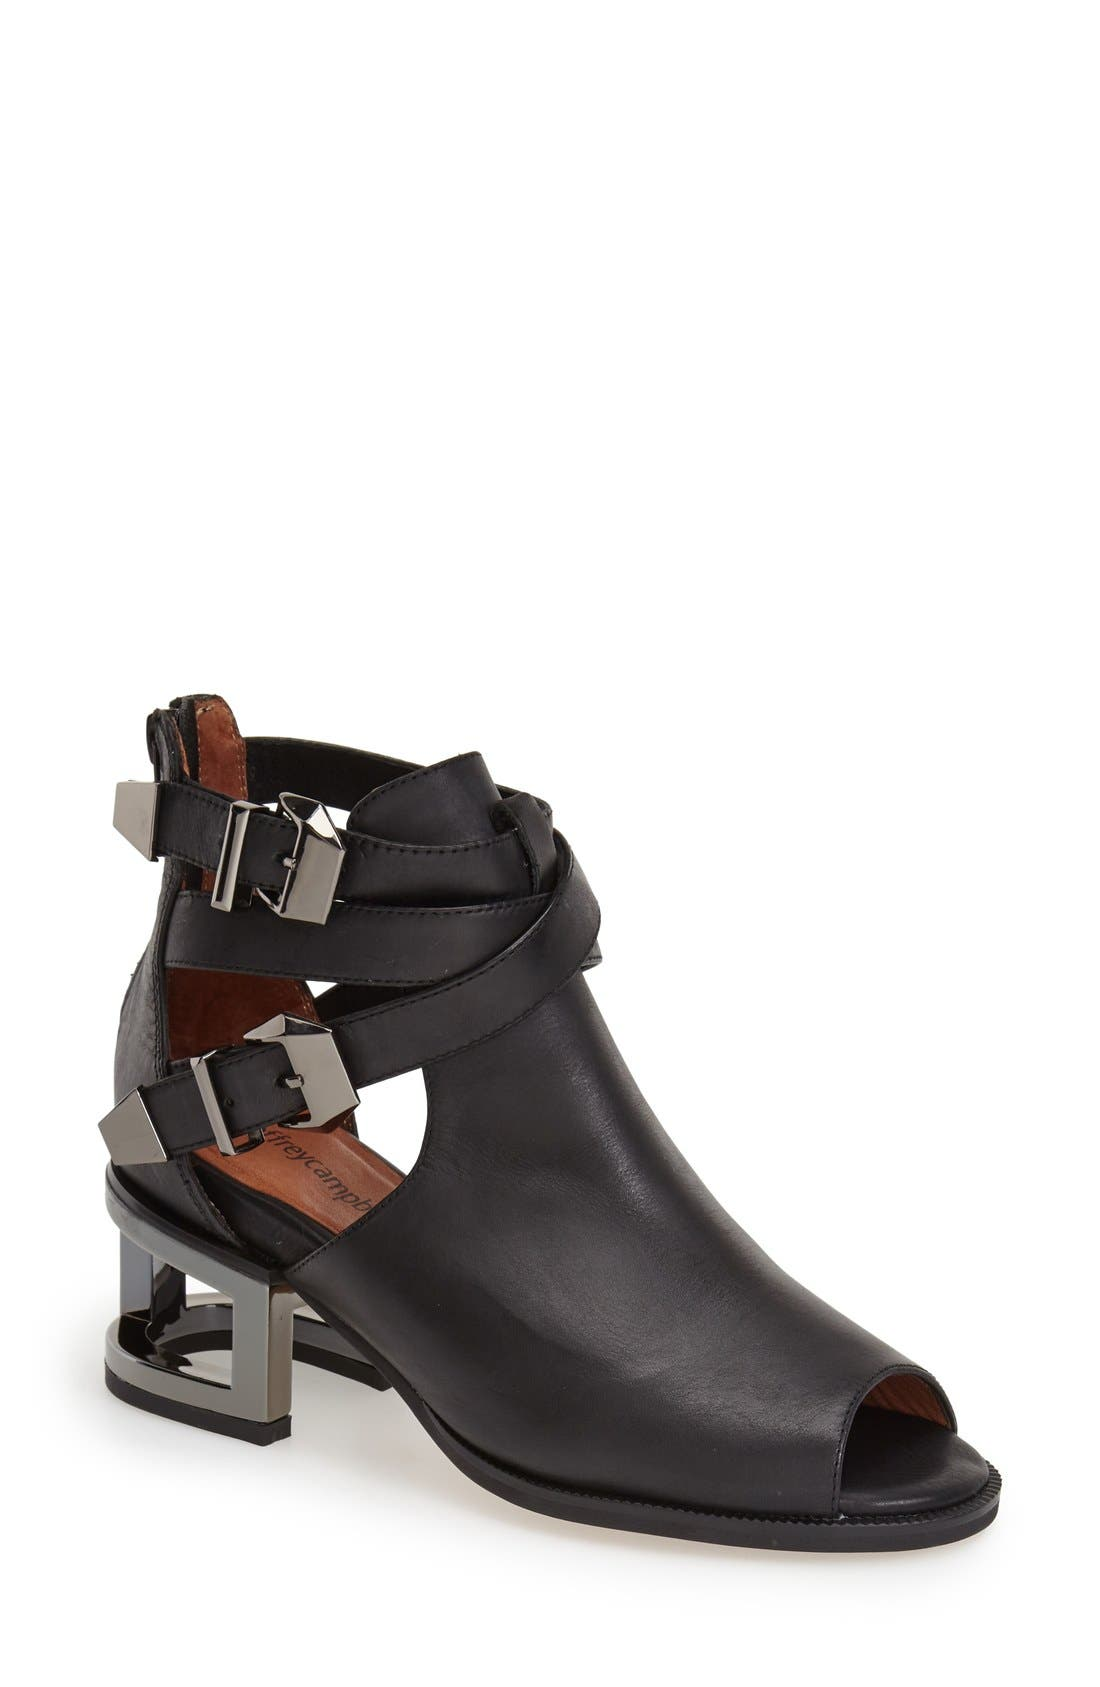 Alternate Image 1 Selected - Jeffrey Campbell 'Gentry' Open-Toe Bootie (Women)